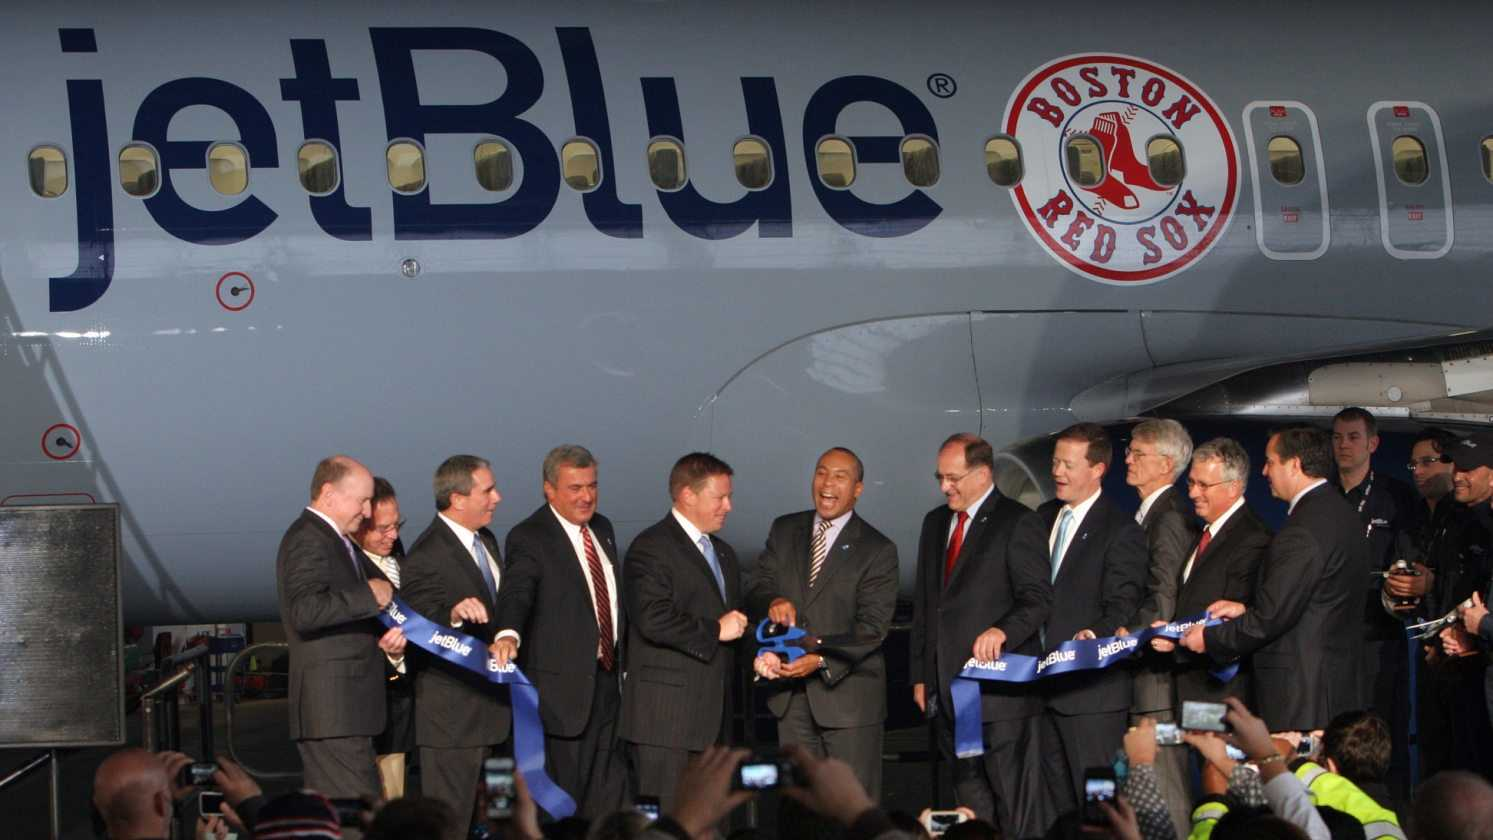 jetBlue held a a ribbon cutting ceremony to celebrate the airline's move to historic Hangar 8 at Logan International Airport in Boston, Monday, Dec. 10, 2012.